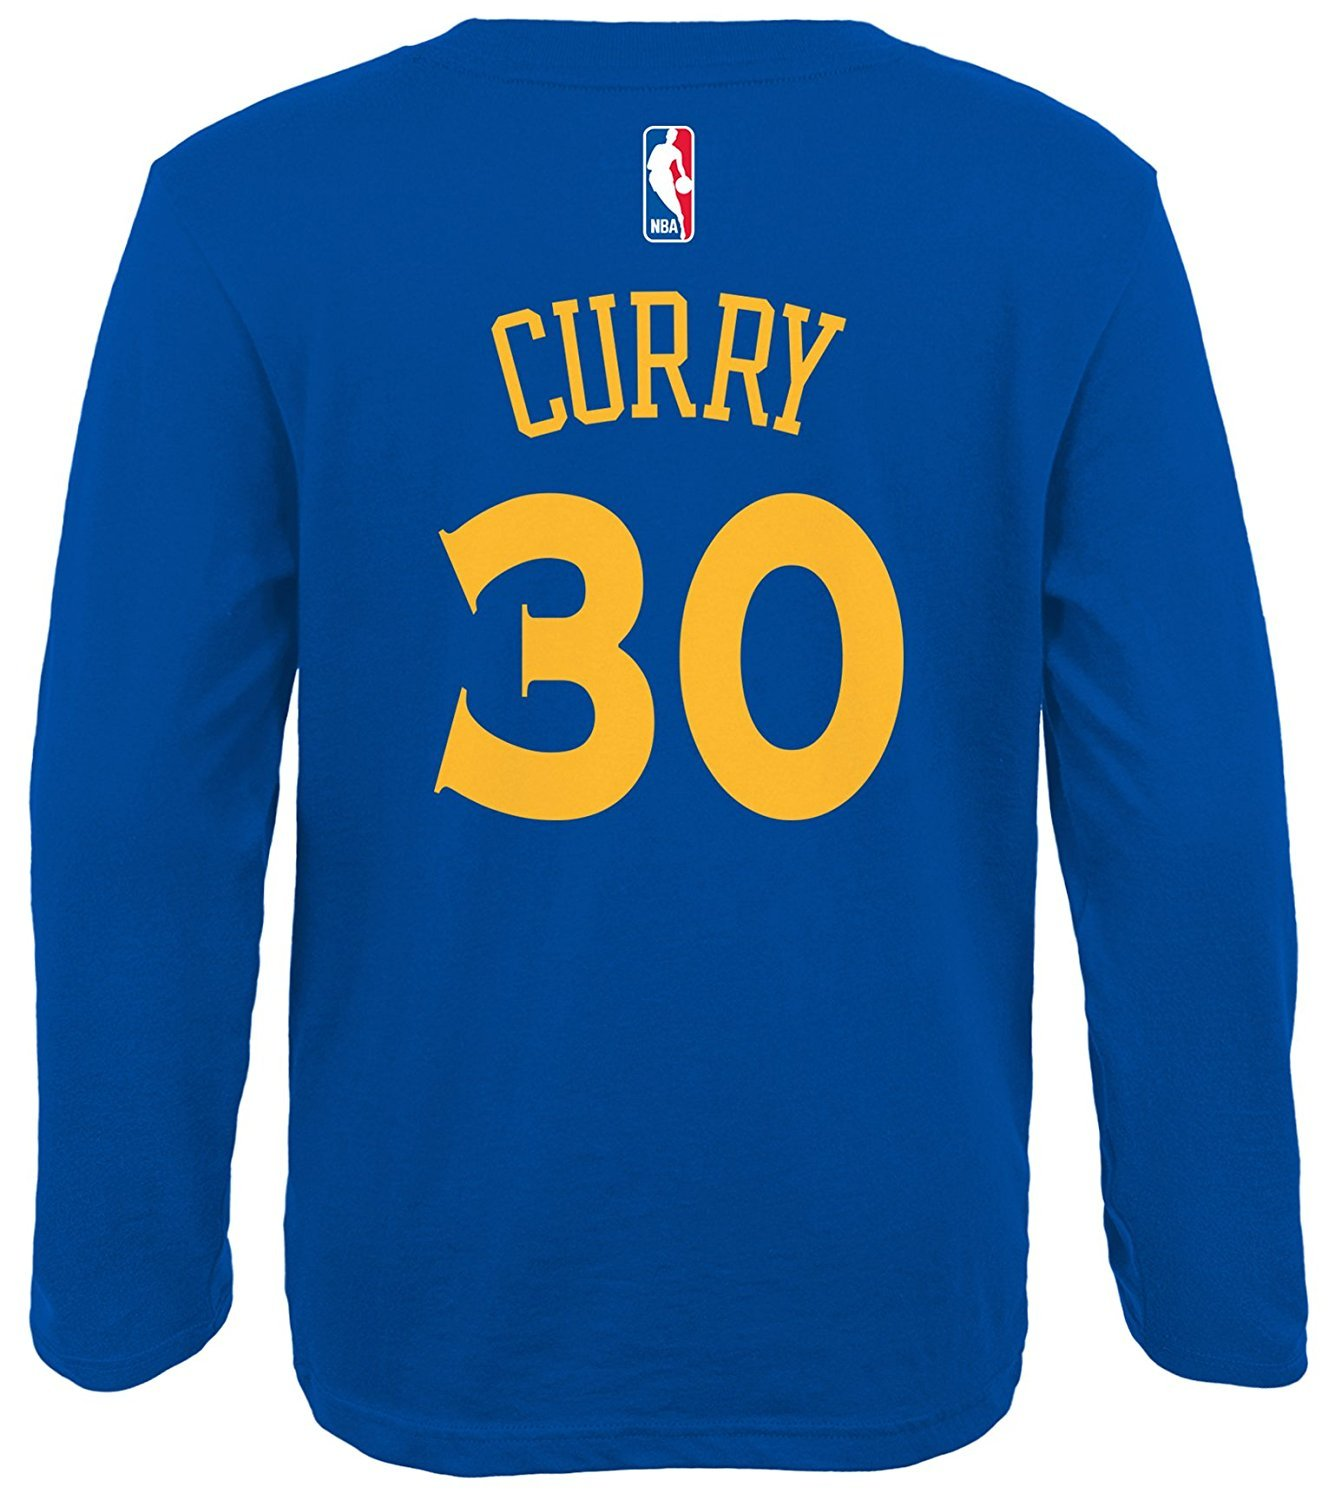 wholesale dealer 82a02 9fdf0 Outerstuff Stephen Curry Golden State Warriors #30 Player Name and Number  Long Sleeve Jersey T-Shirt